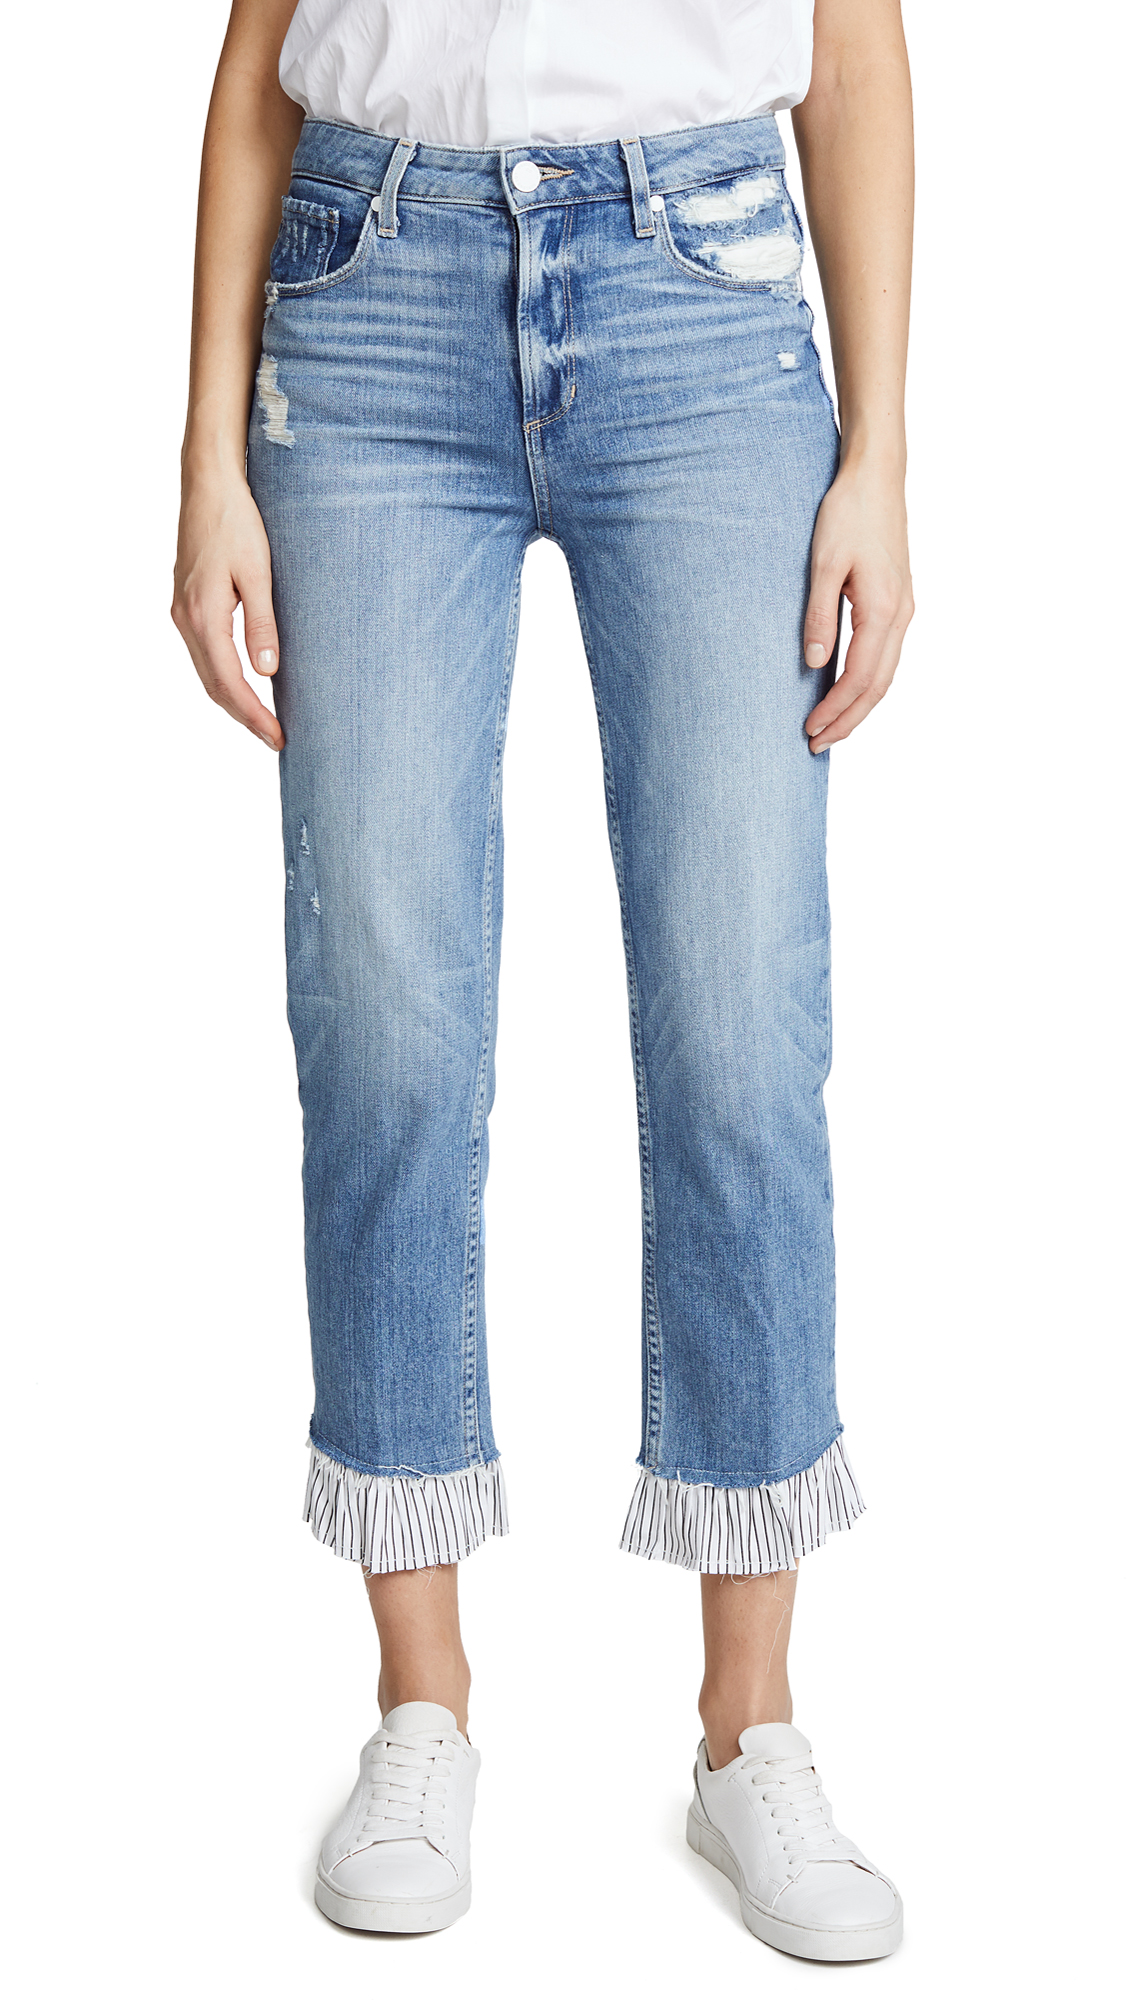 PAIGE Sarah High Rise Jeans with Ruffled Hem In Belfast